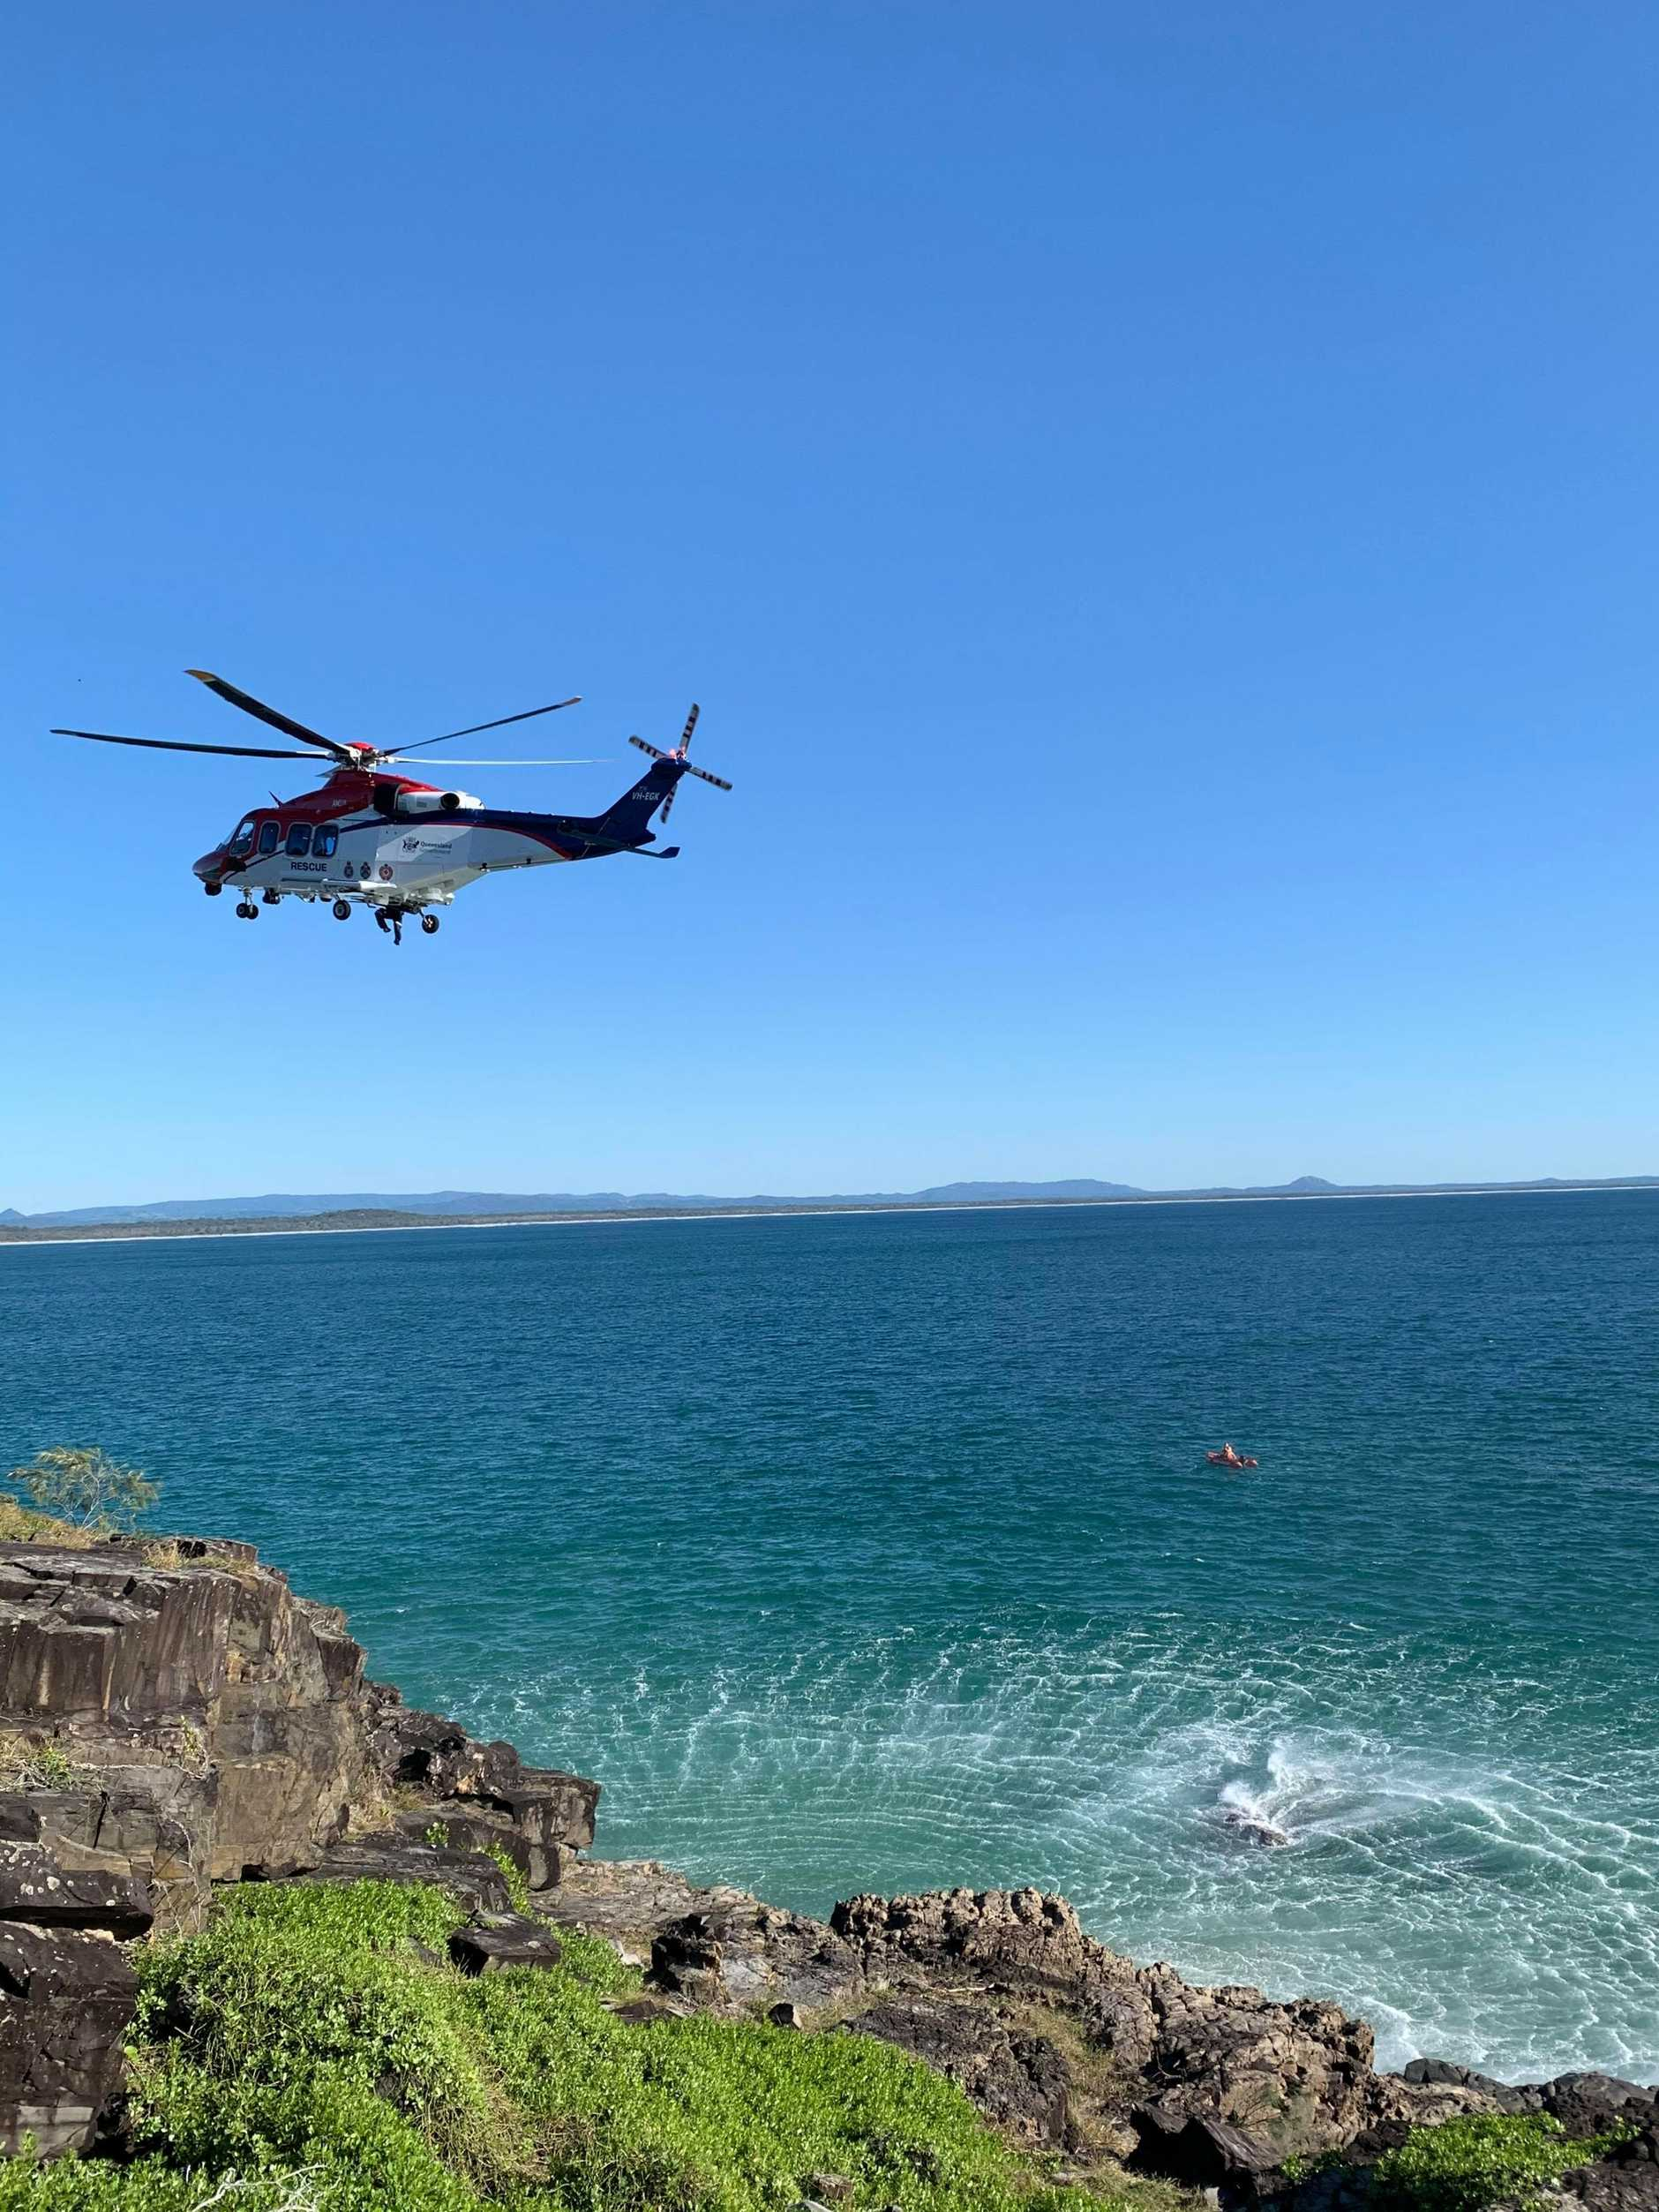 AIR RESCUE: A man has been airlifted to hospital after falling onto rocks at a Noosa beach (Pic: Vanessa Lyons)